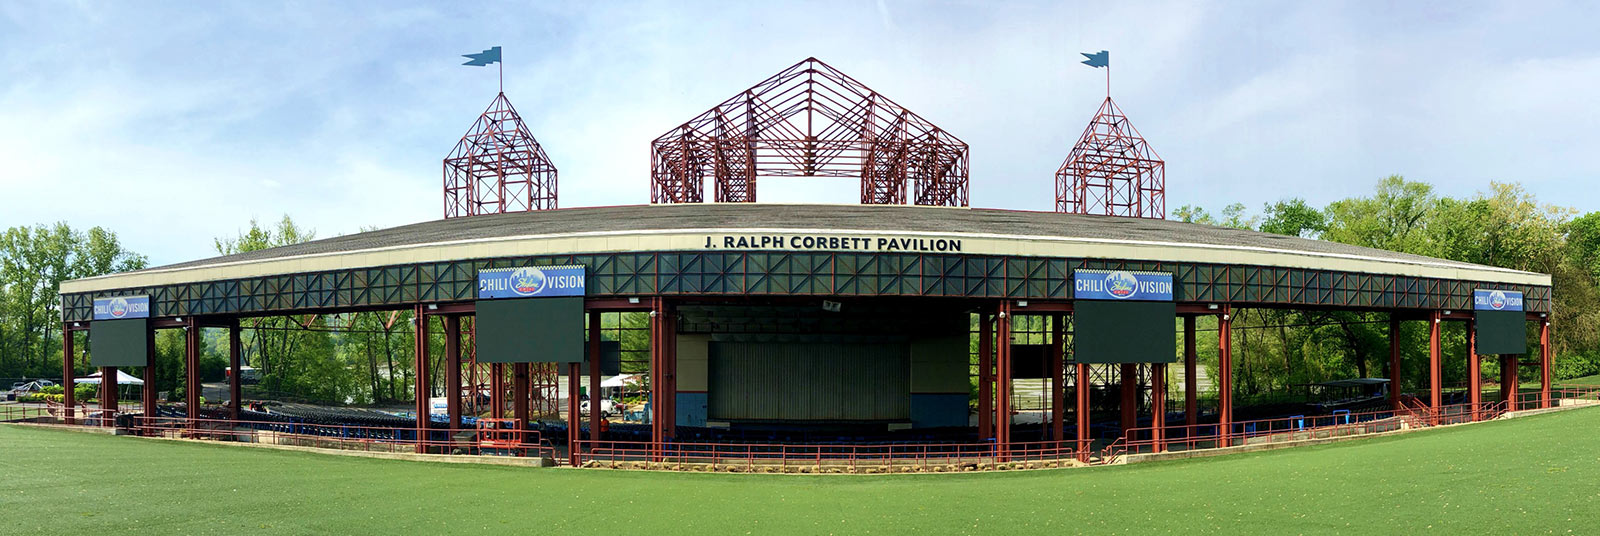 The completed, unobstructed view of the stage at the Riverbend Music Center J. Ralph Corbett Pavilion in Cincinnati, Ohio.